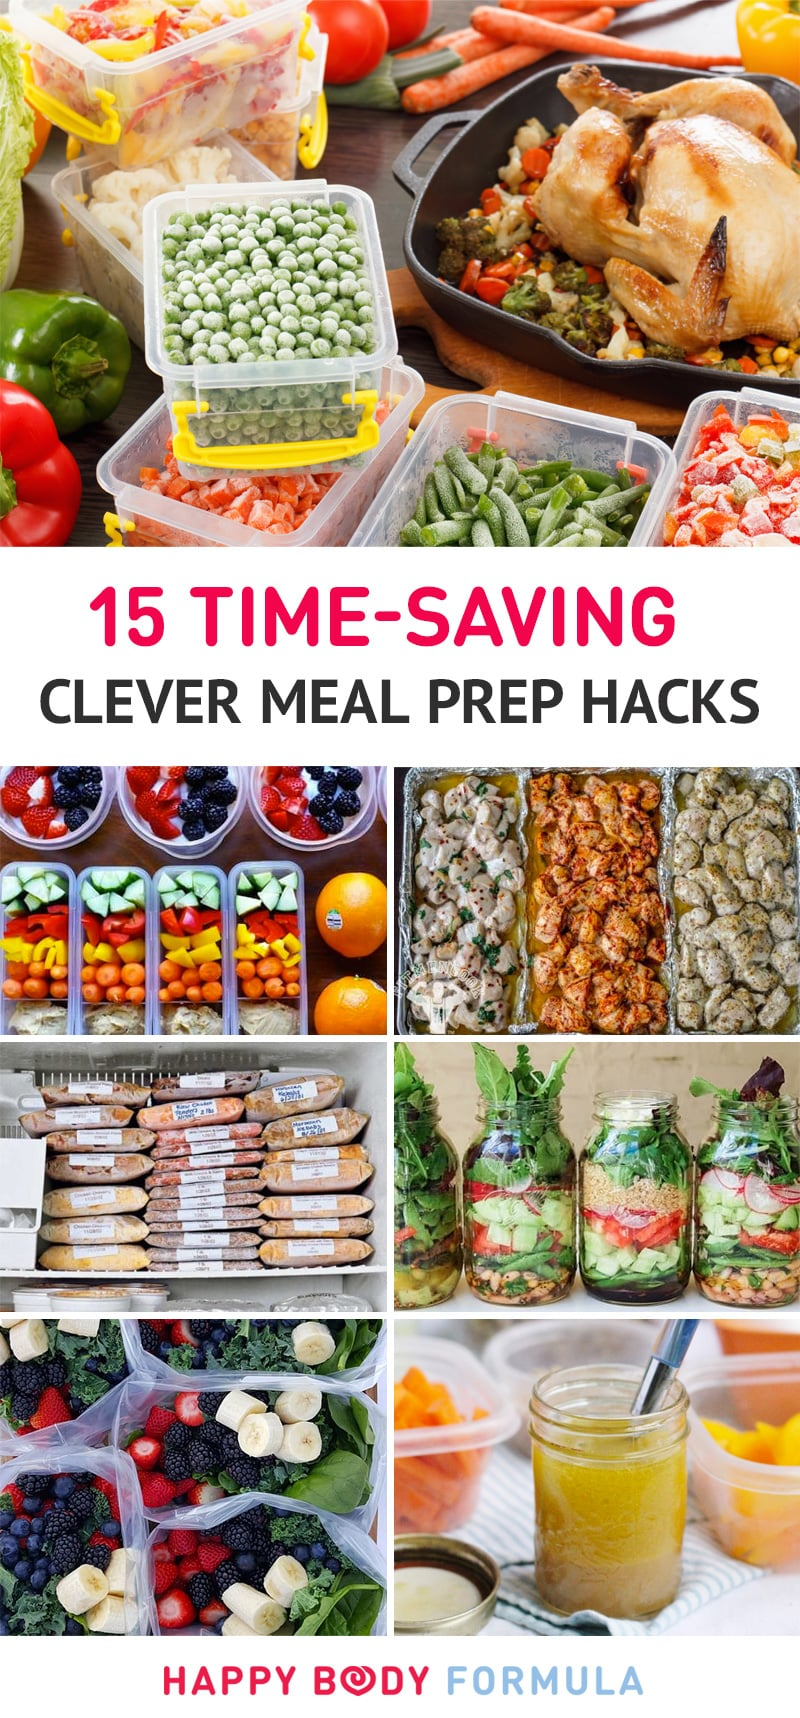 10 Genius Meal Prep Hacks That Will Change The Way You Cook